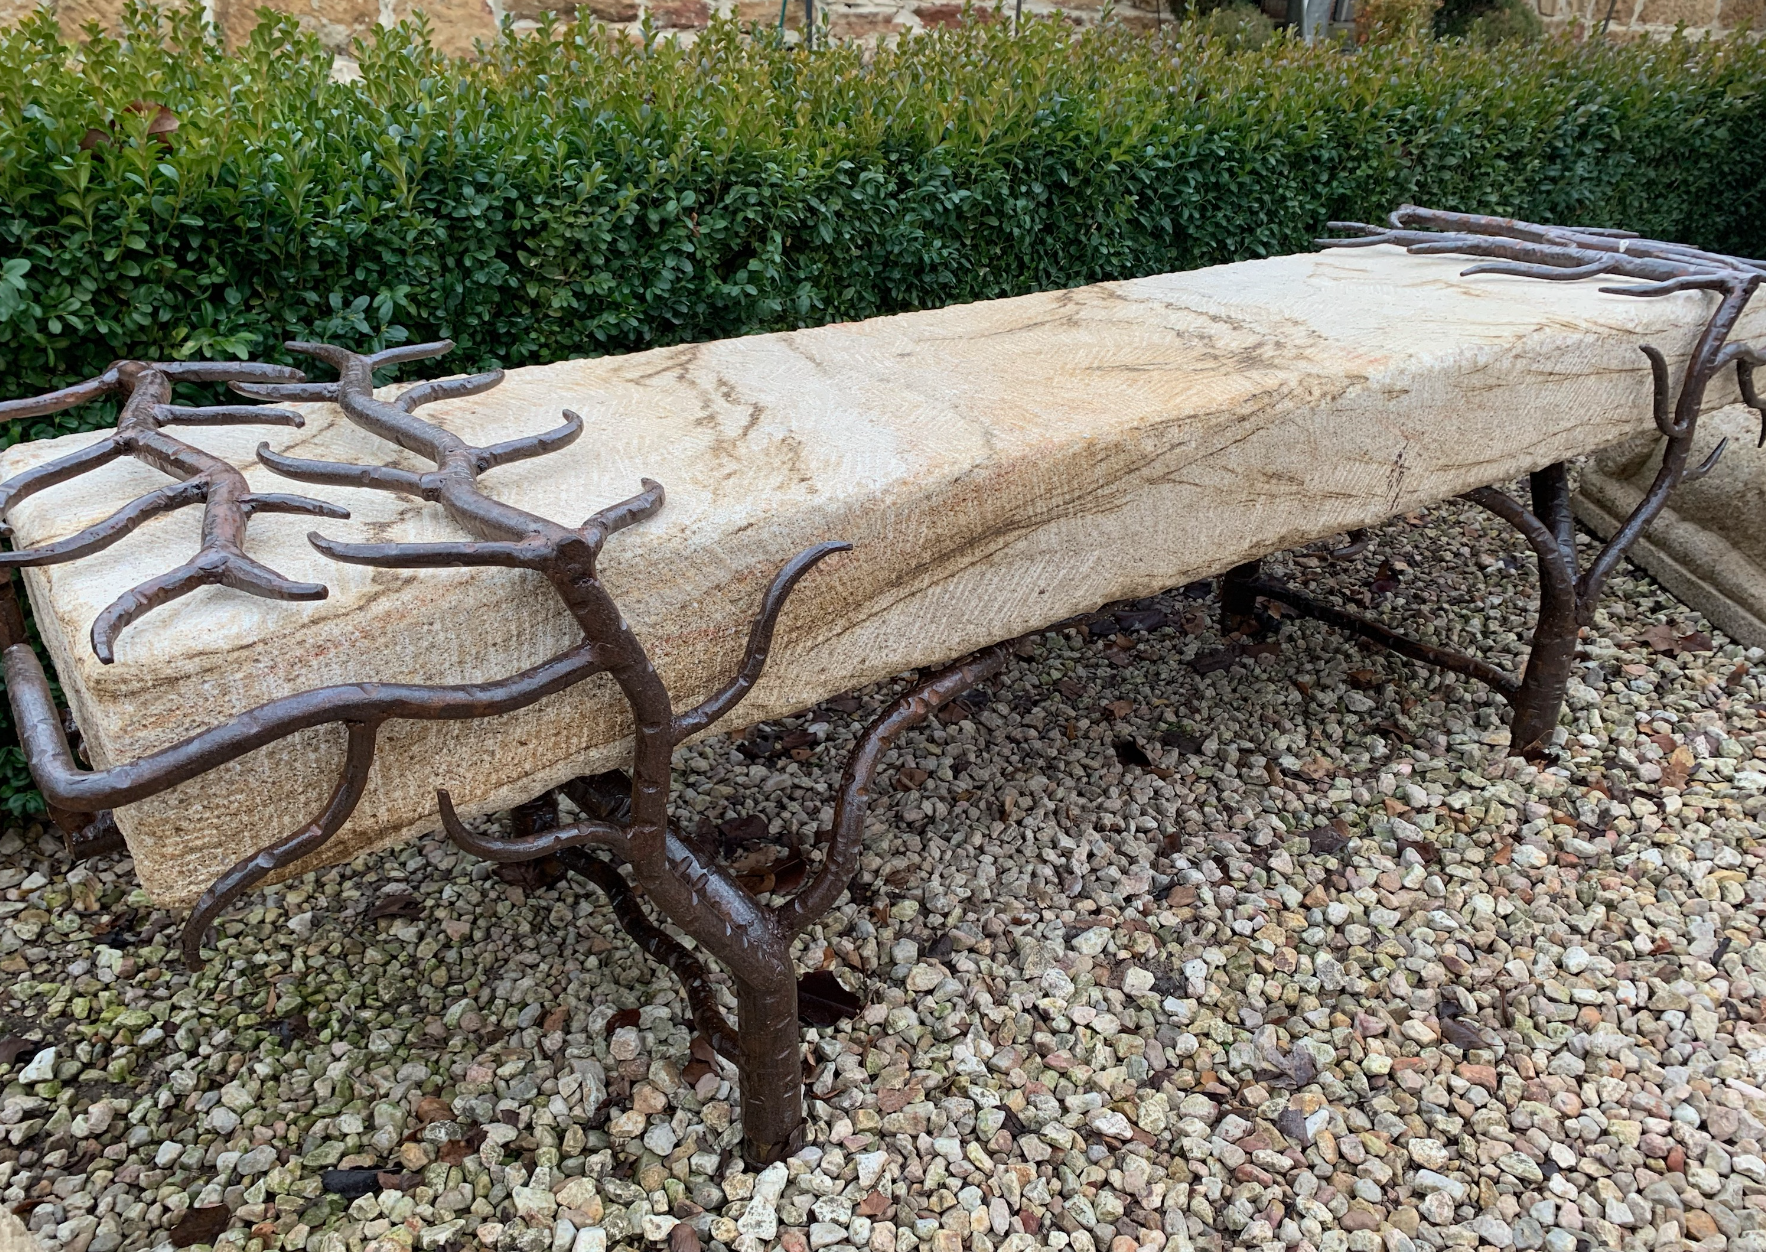 SB1554 Natural garden seat with forged iron ends and stone seat  $1395 out of stock